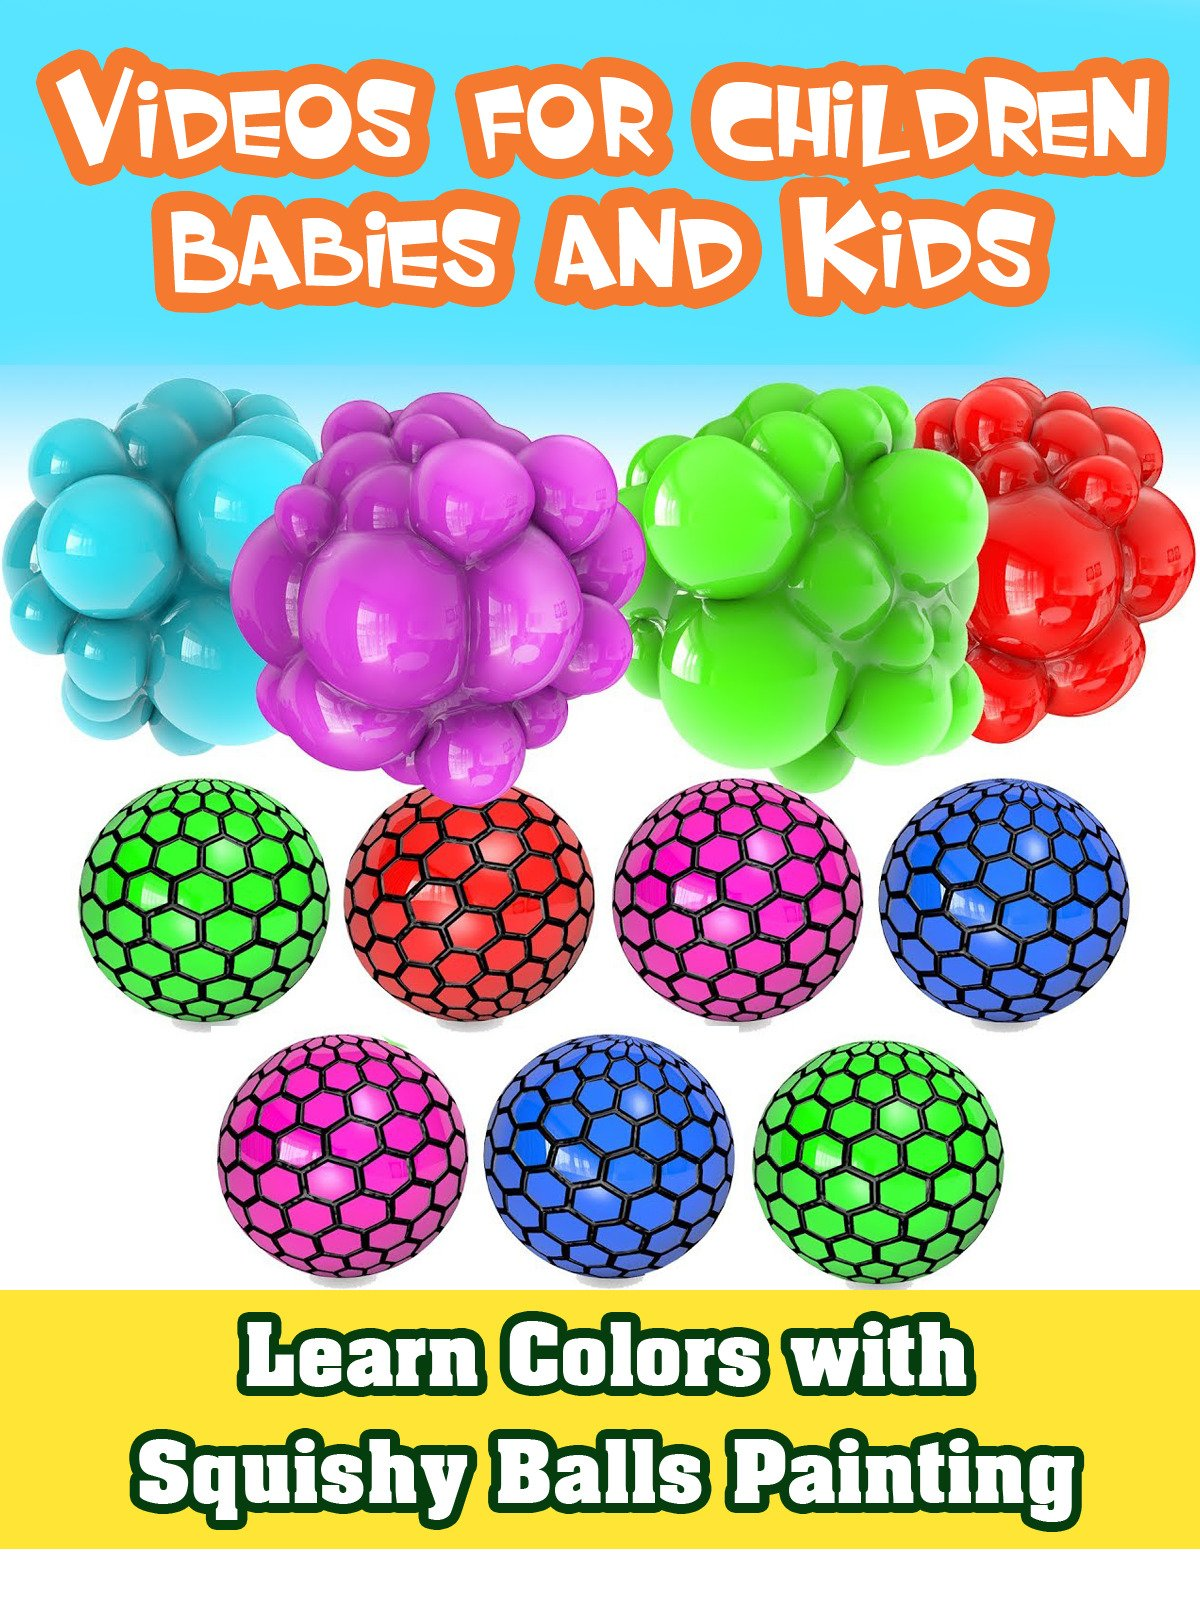 Learn Colors with Squishy Balls Painting